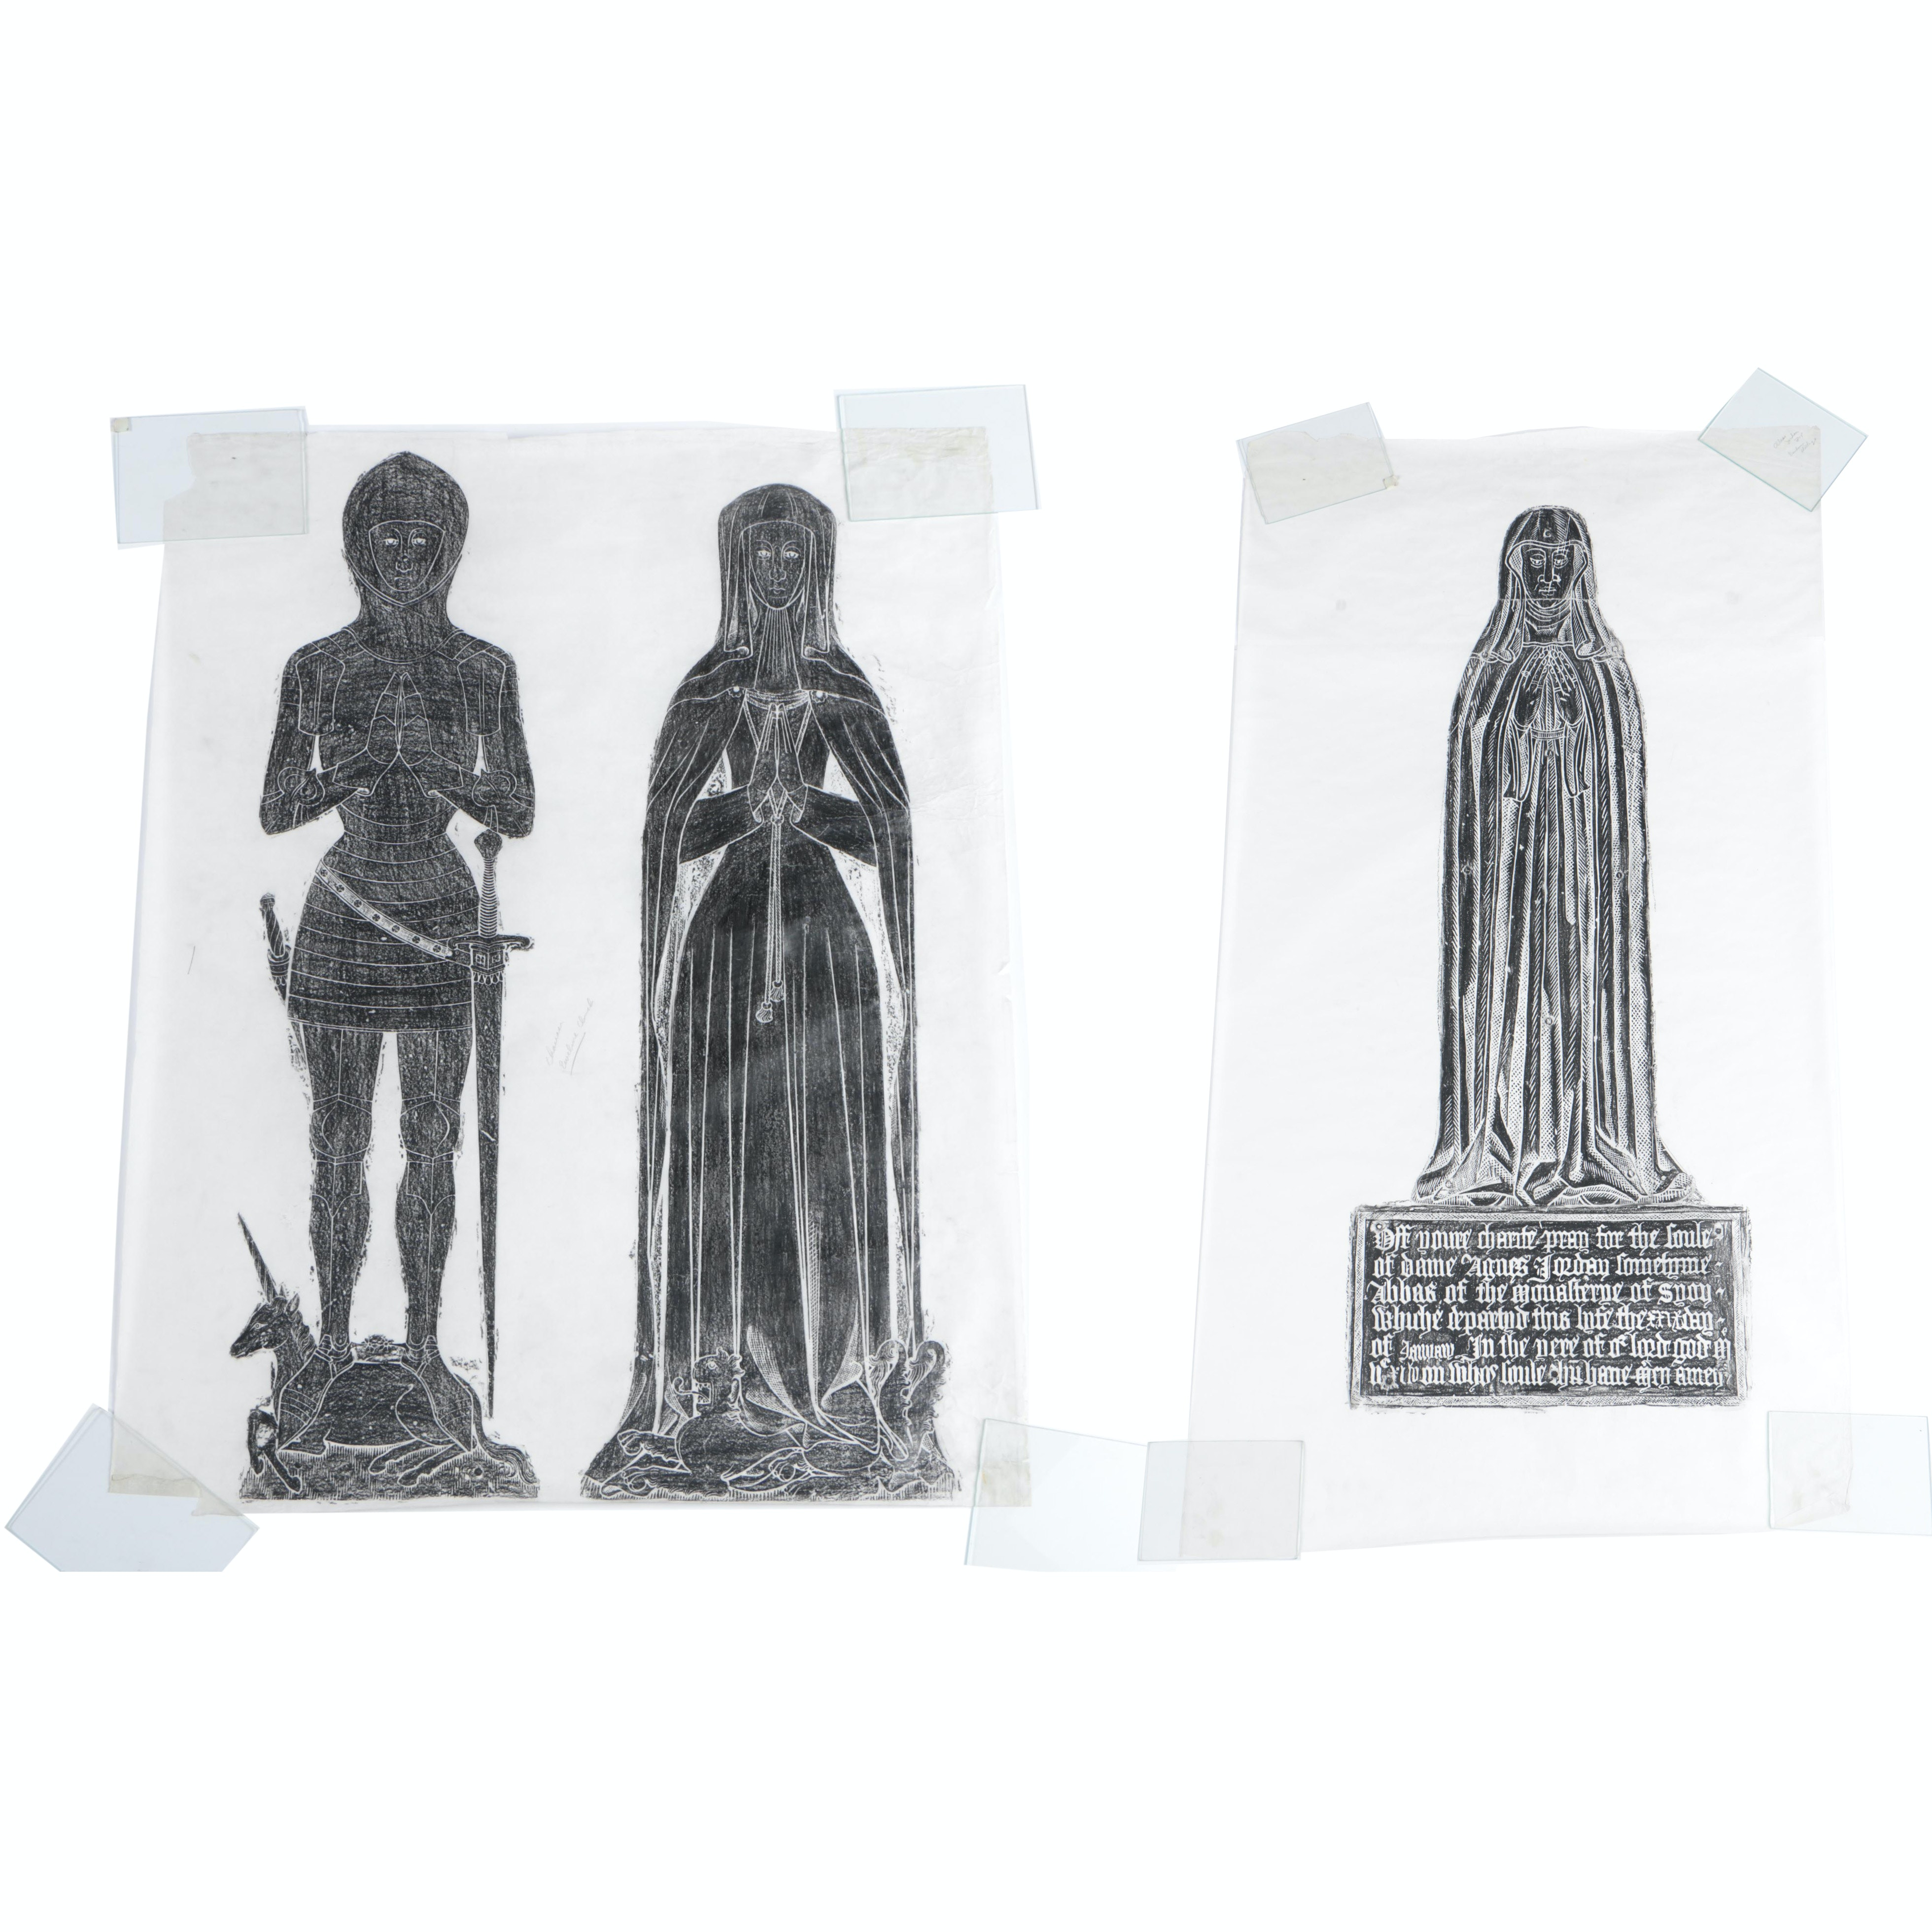 Medieval Brass Tomb Rubbings on Parchment Paper